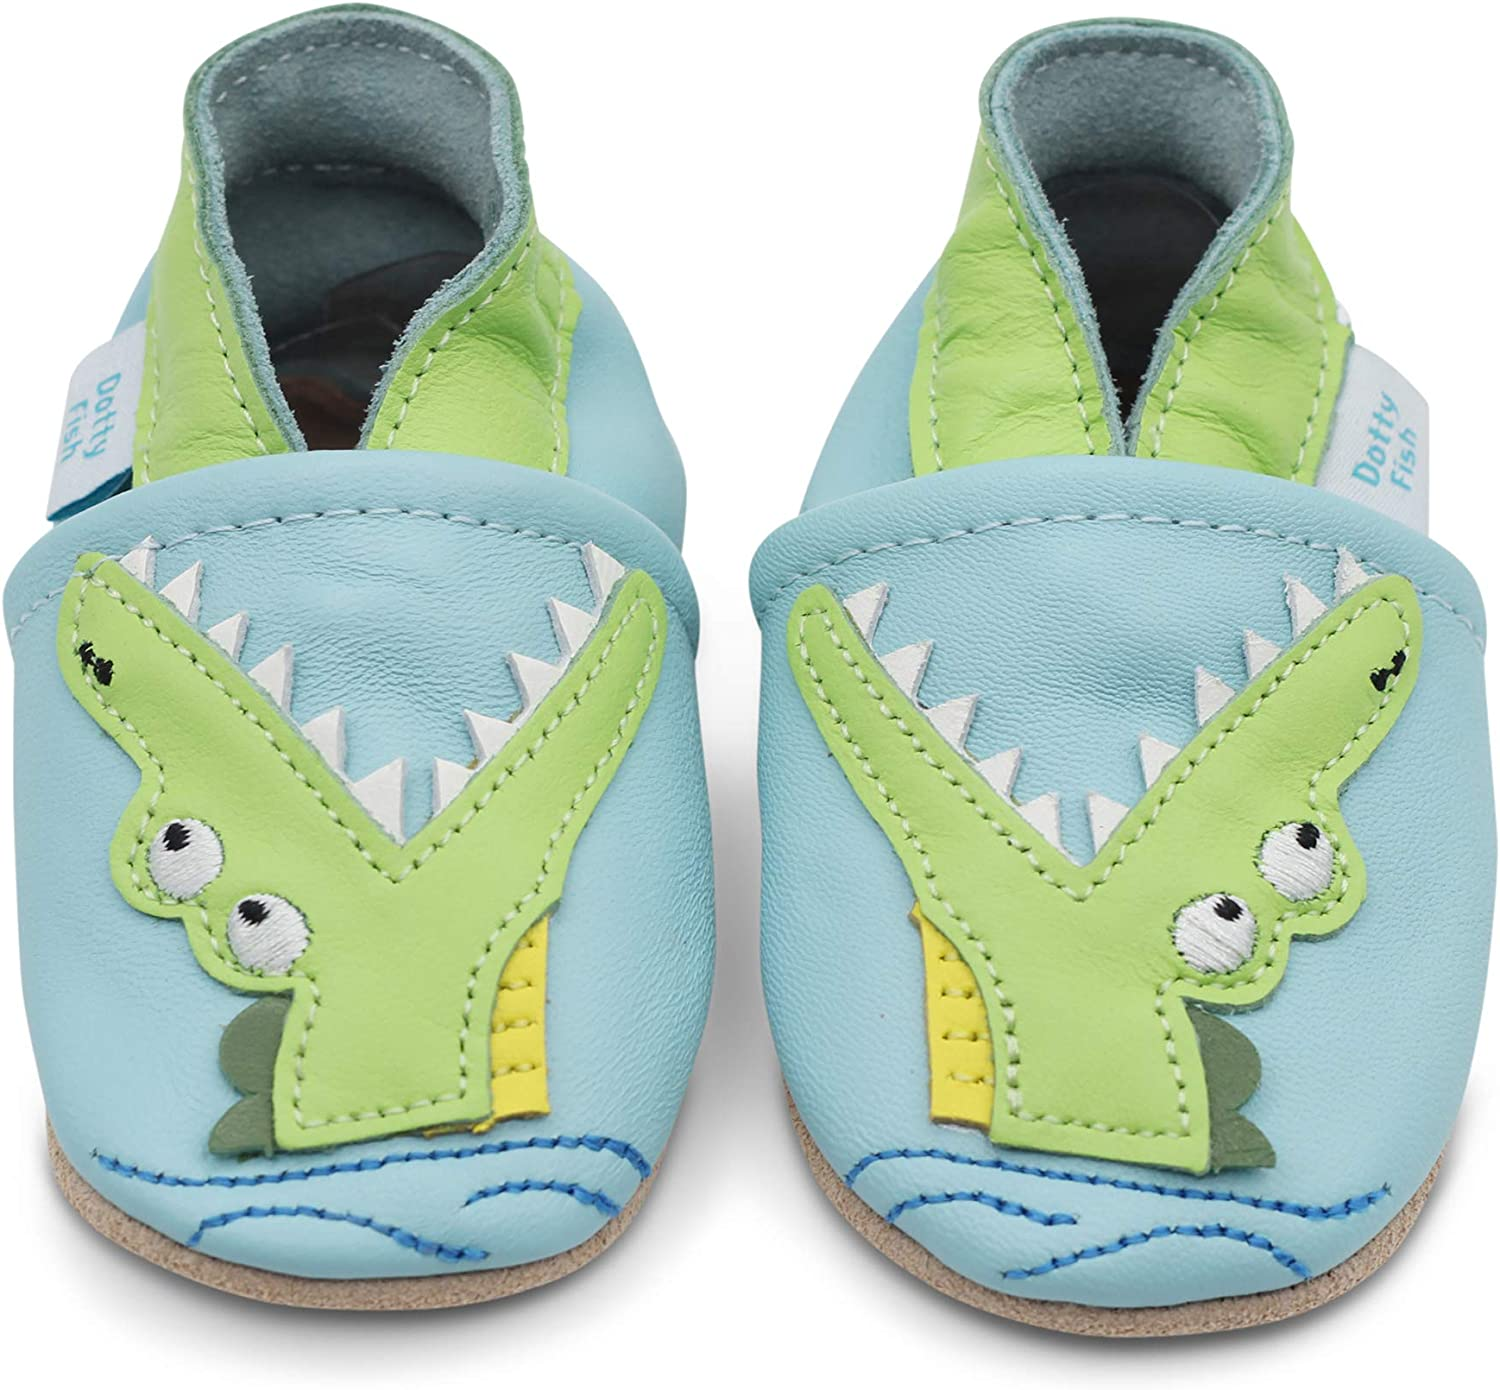 Dotty Fish Soft Leather Boys Infant Toddler Shoes.